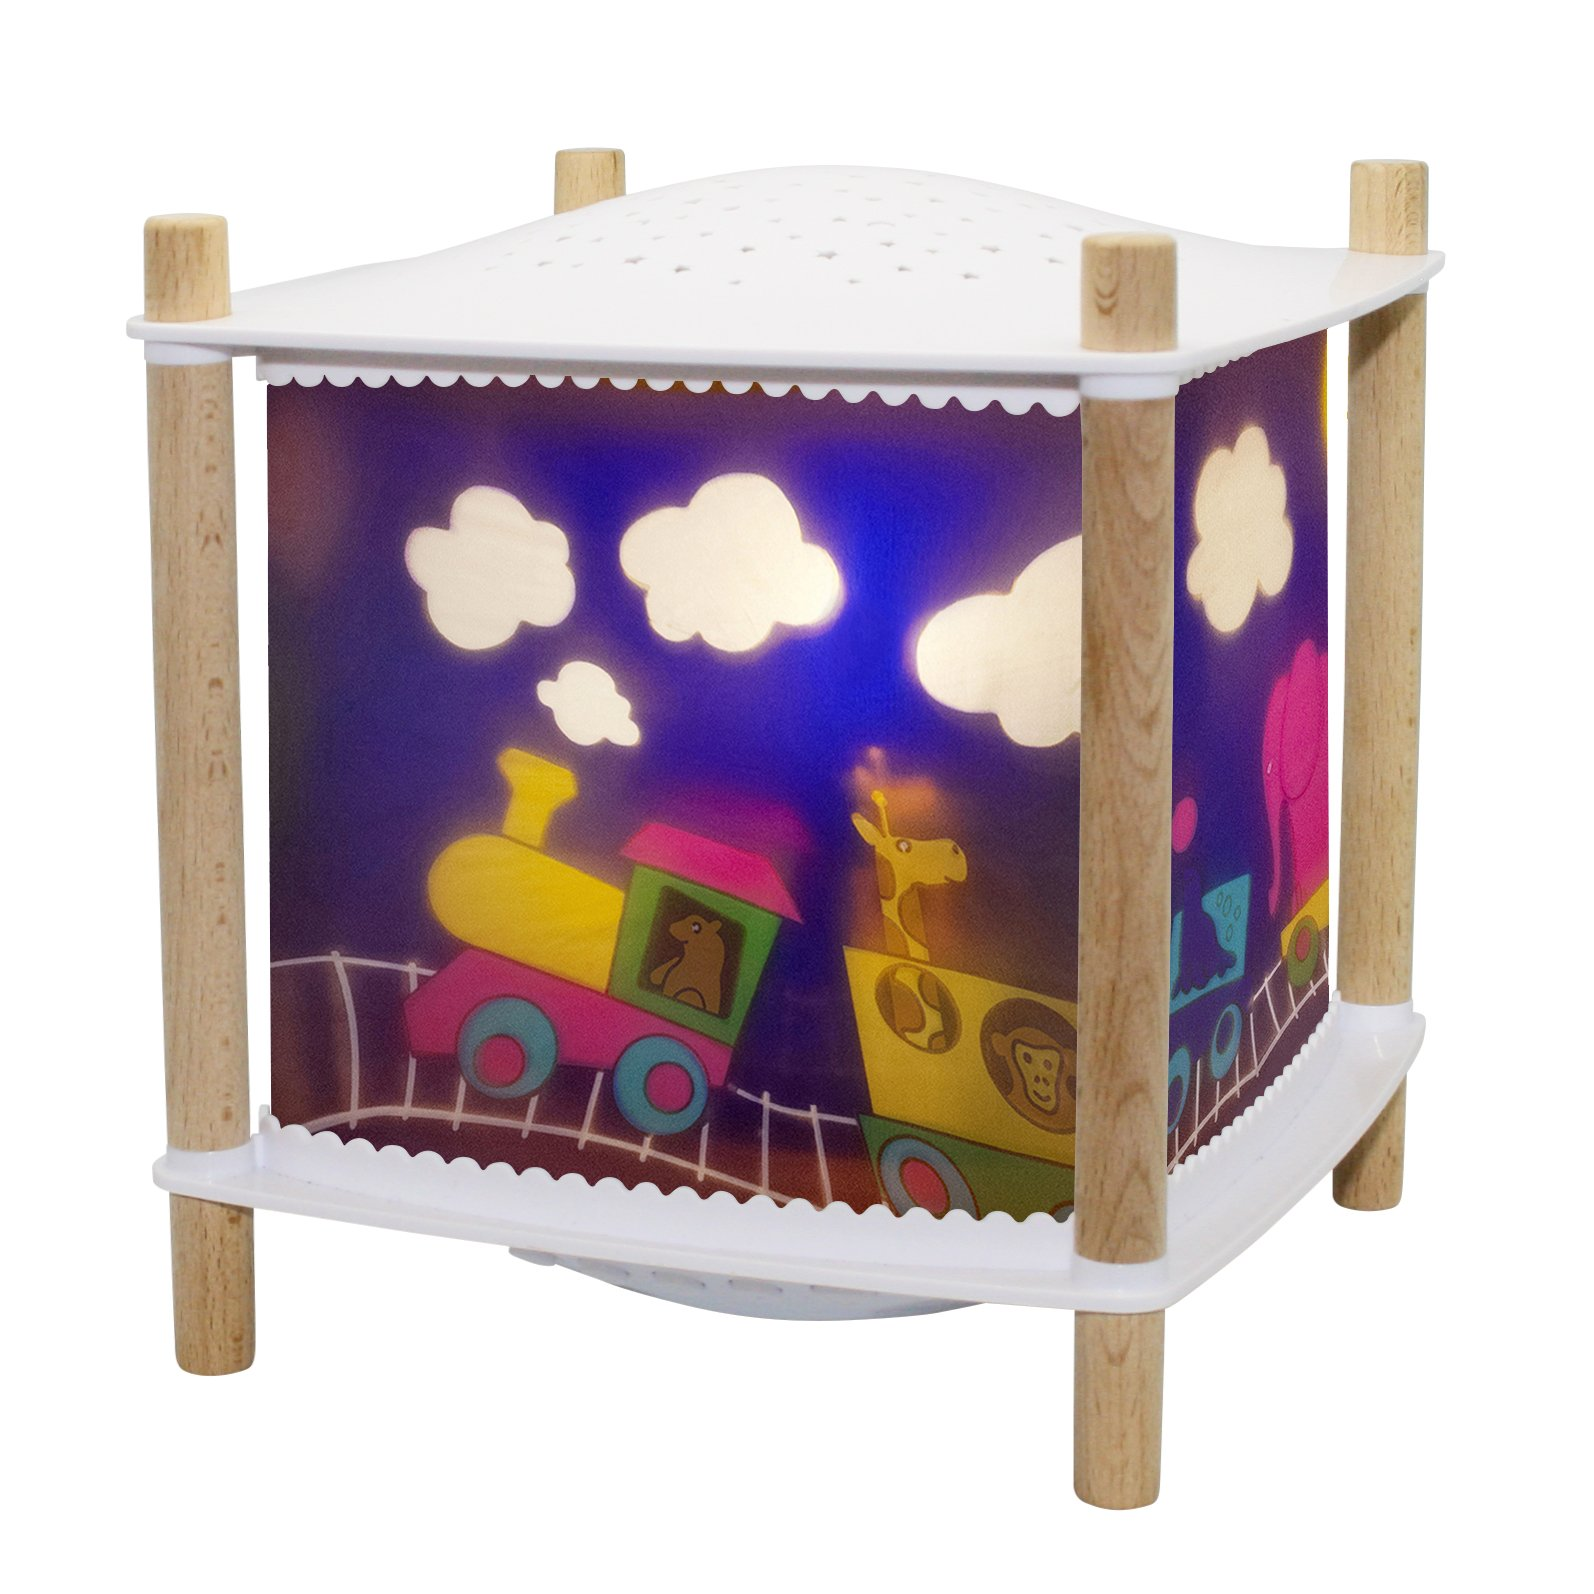 Trousselier - Animal Train - Night Light - Lantern Revolution 2.0 - Cry Detector & Musical & Wireless & USB Rechargeable